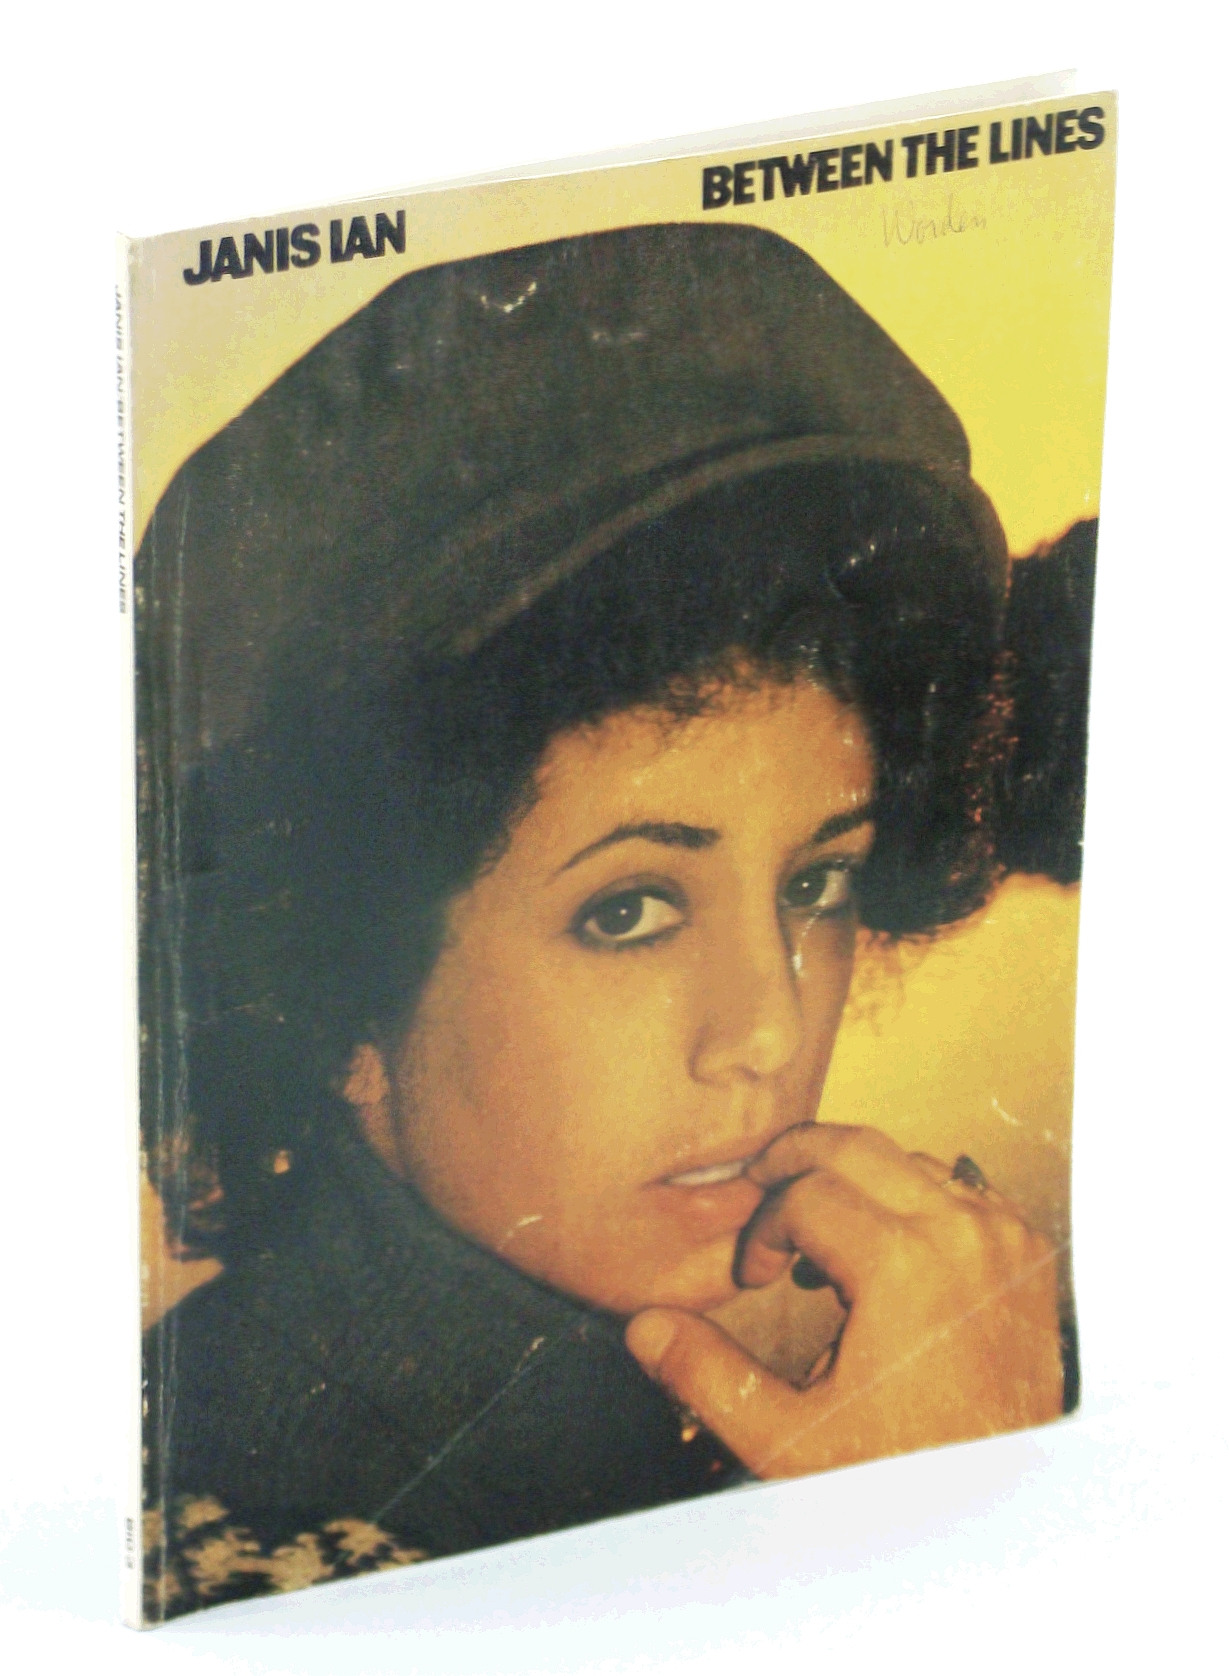 Image for Janis Ian [ 1975 ] Between the Lines (Watercolors, At Seventeen, When the Party's Over, From Me to You, Bright Lights & Promises, In the Winter, Between the Lines, The Come On, Light a Light, Tea & Sympathy, Lover's Lullabye)